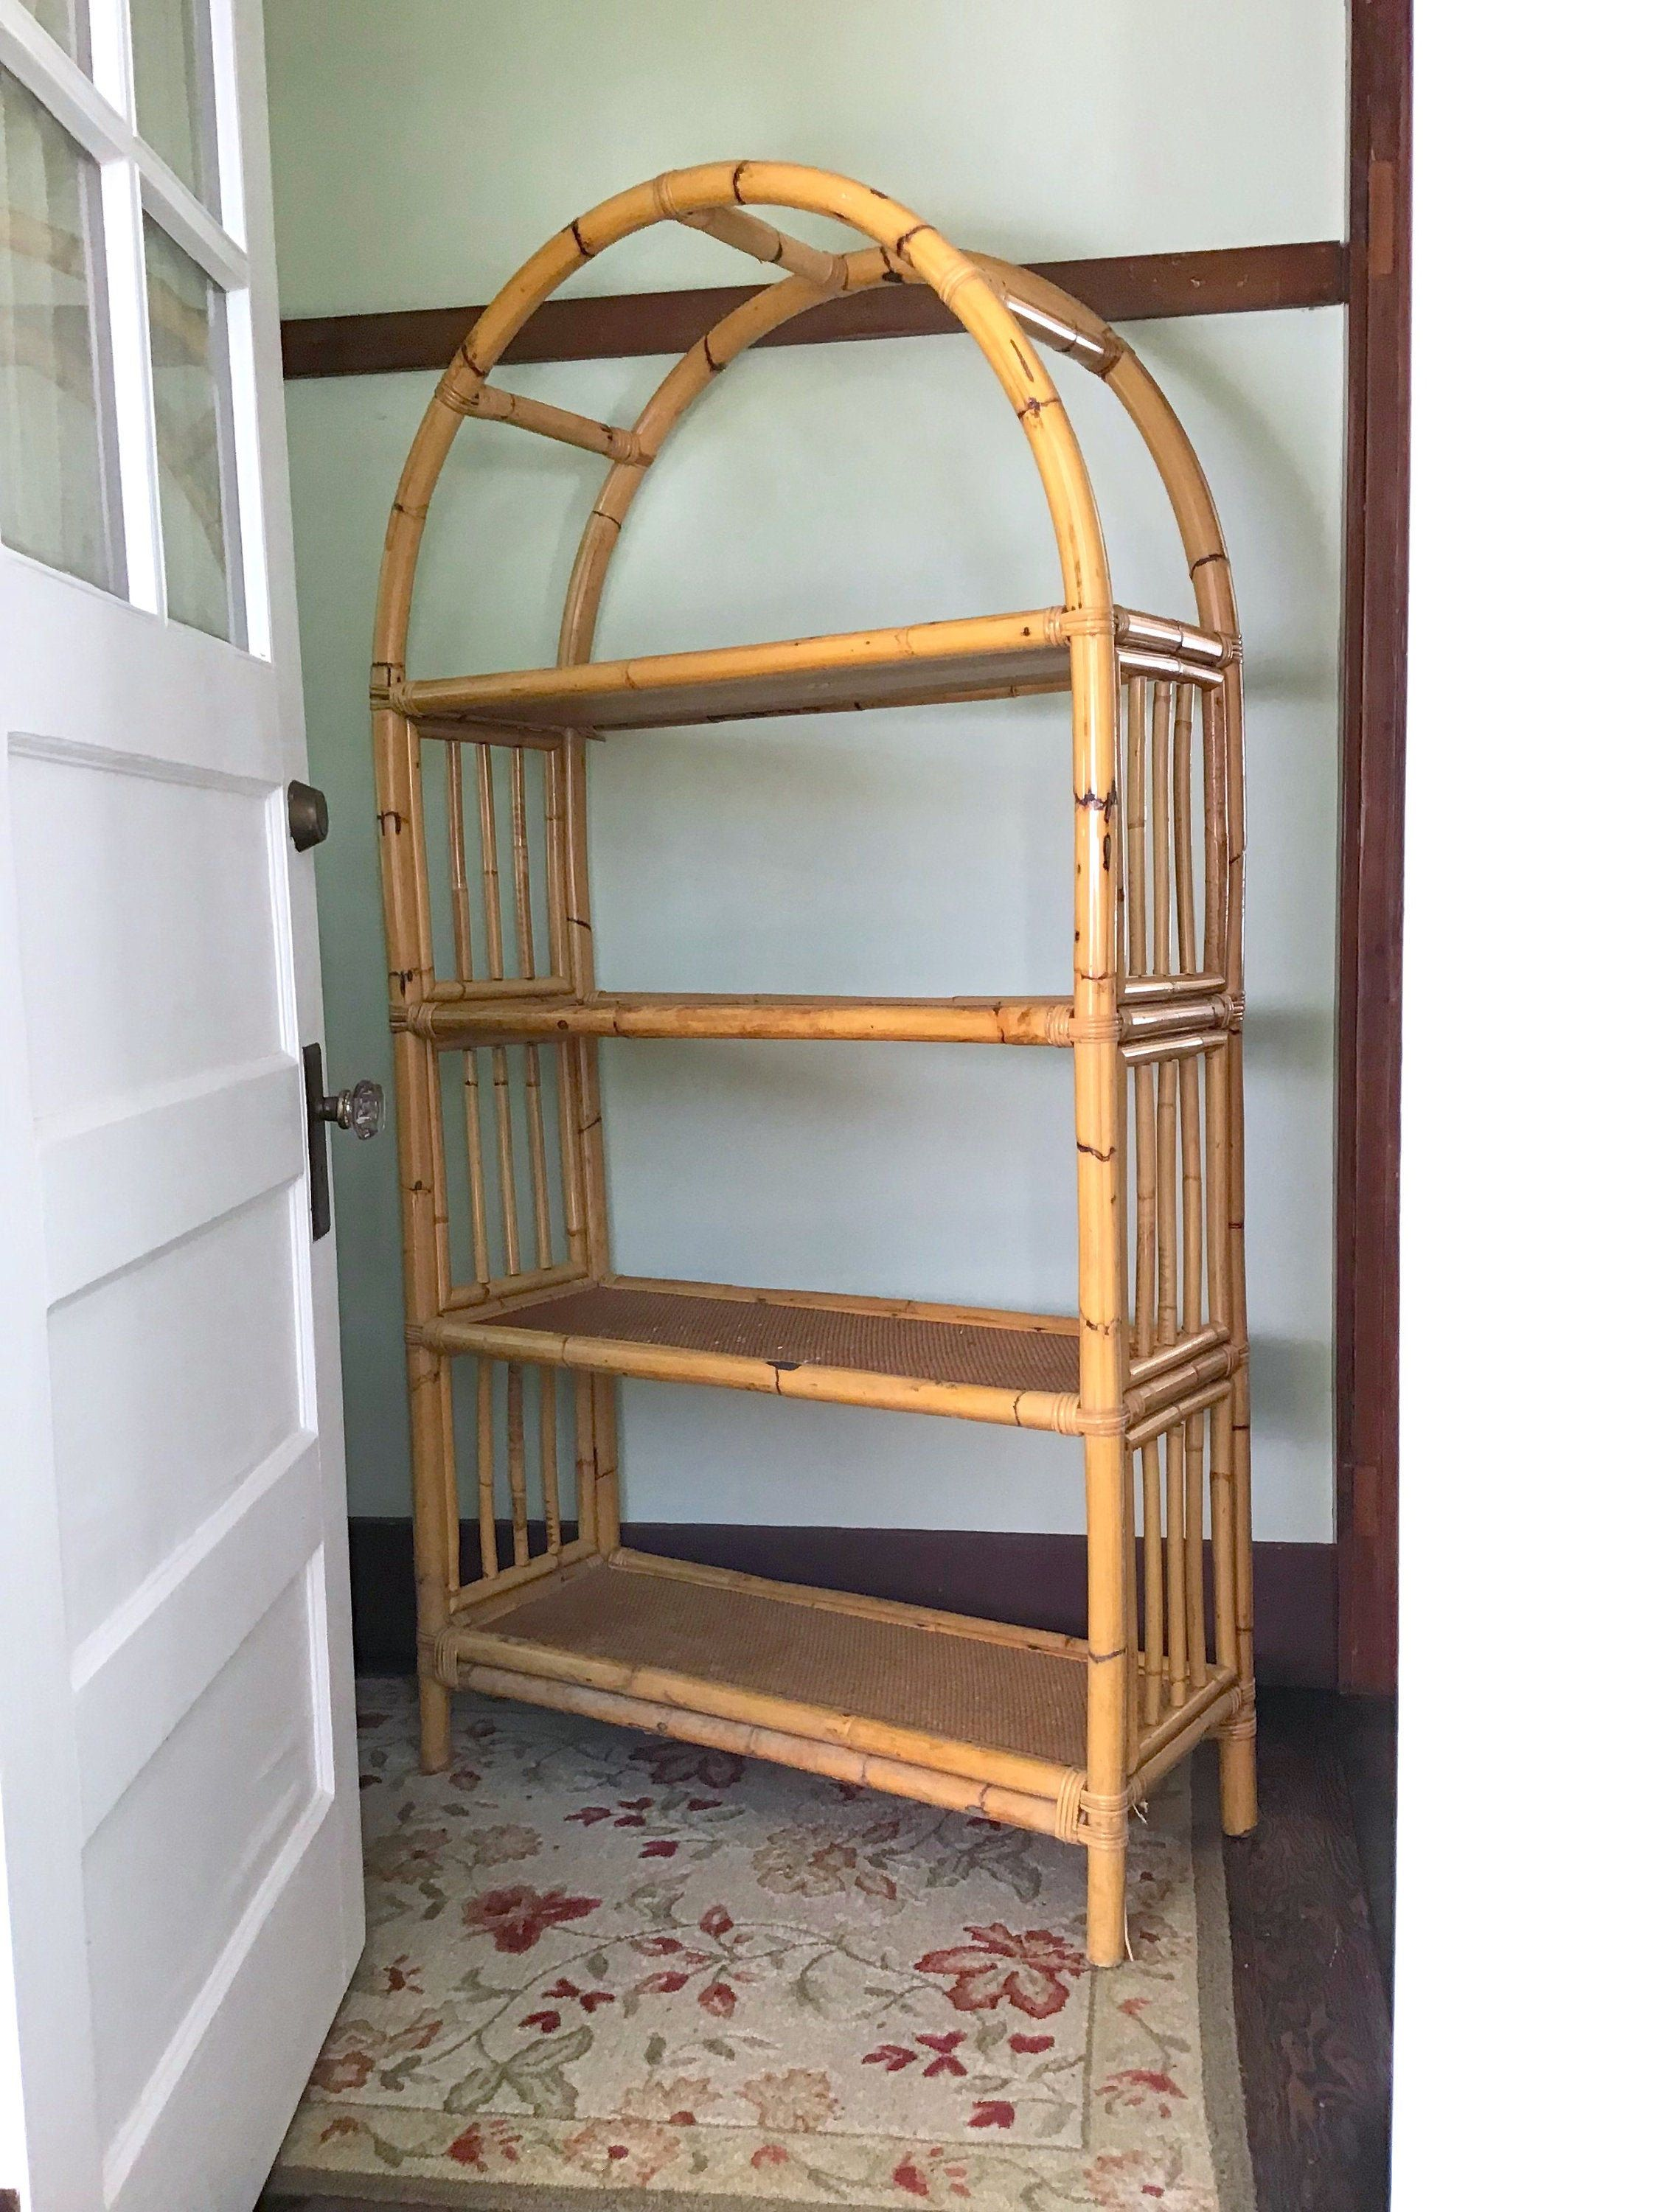 Bamboo Bookshelf Rattan Etagere Vintage Shelving With Images